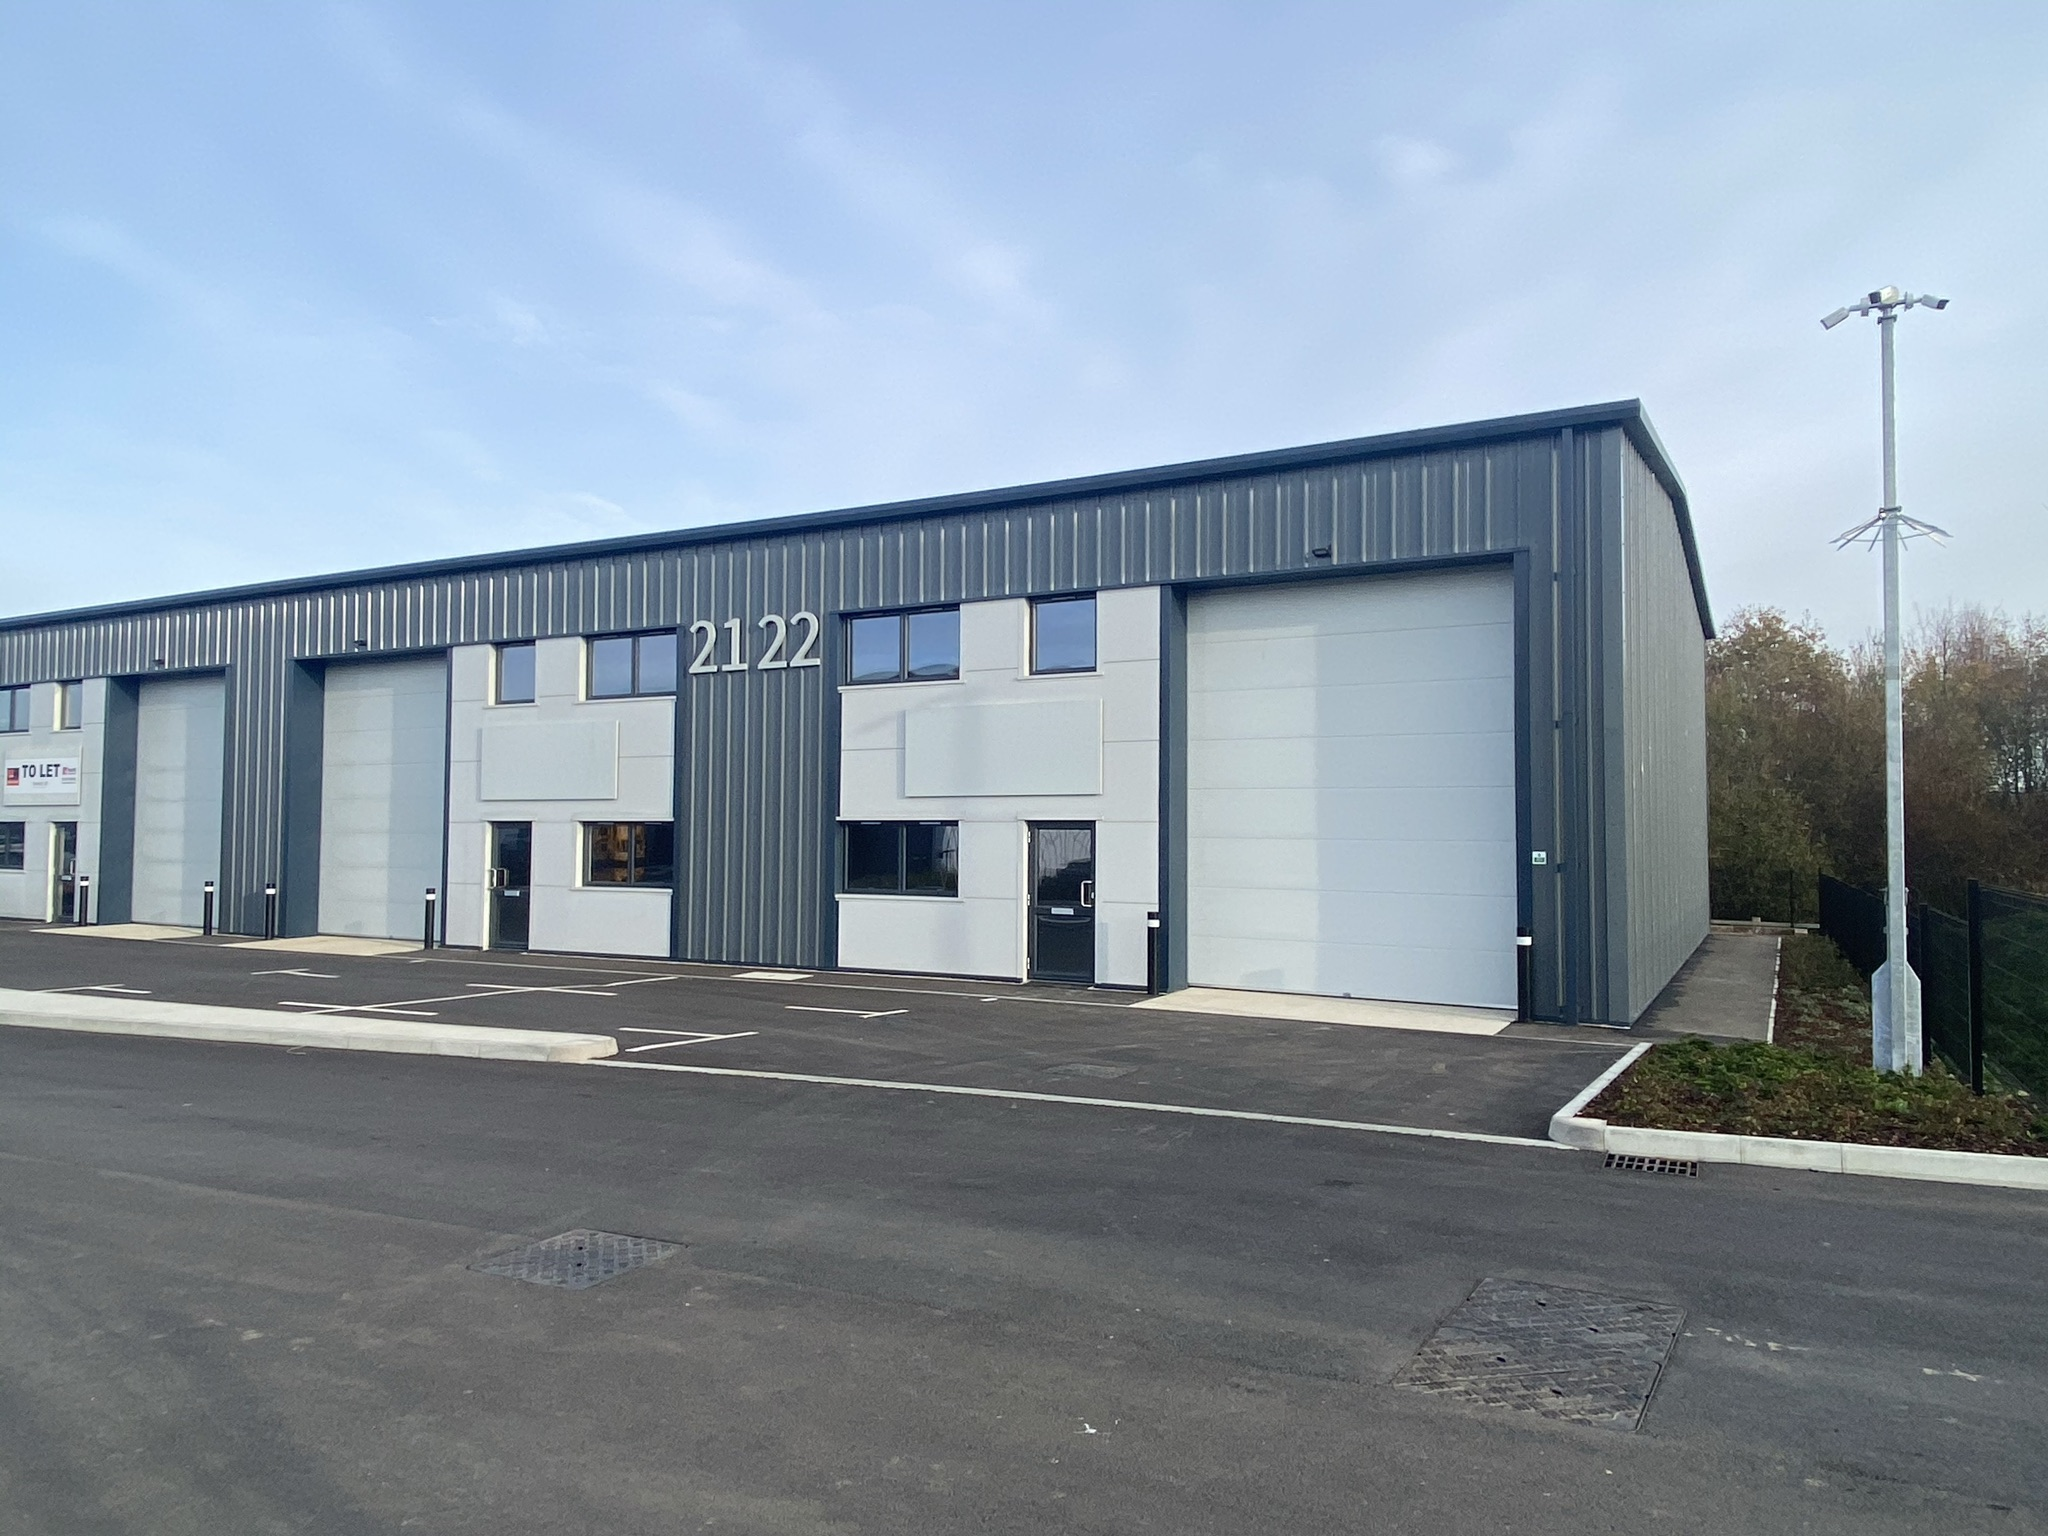 Image of Connect 27 Business Park, Twin Oaks Drive, Polegate, East Sussex, BN26 6GP